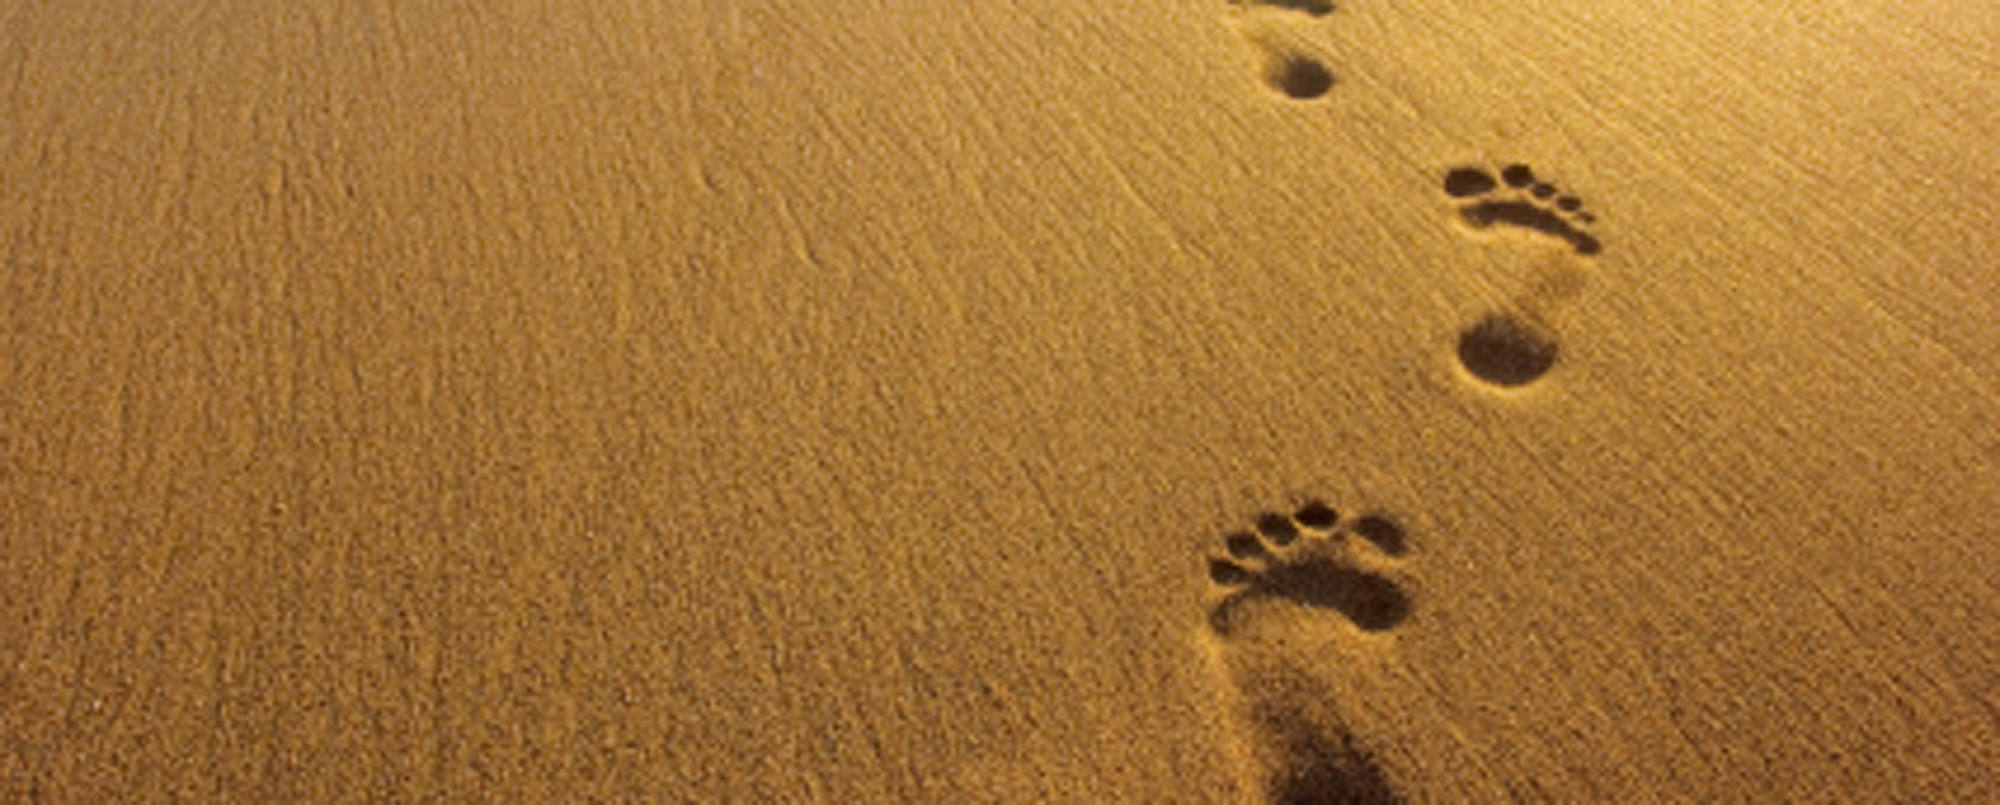 Footprints in the sand 2